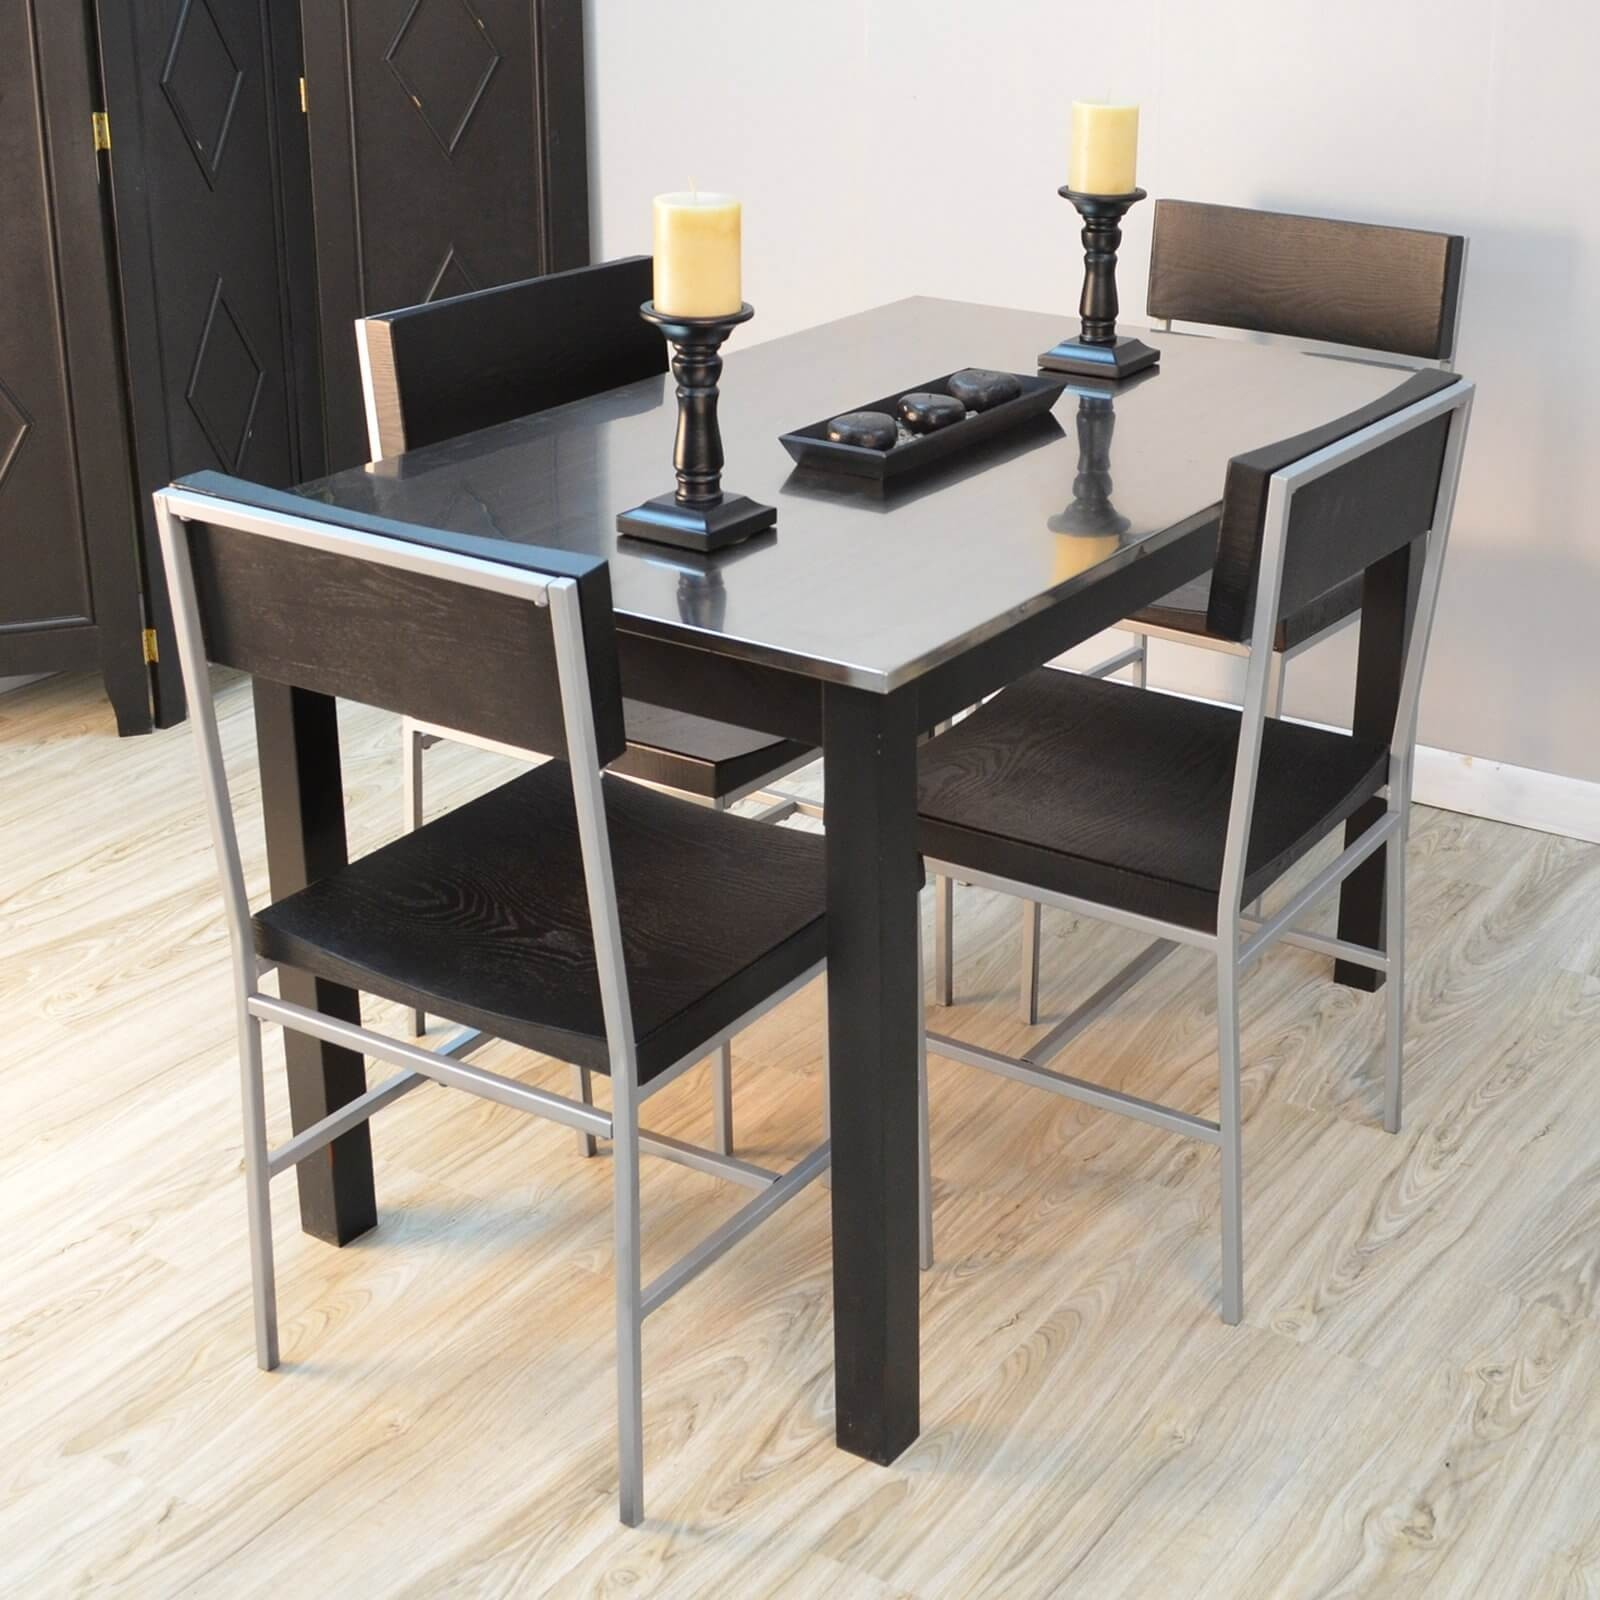 steel kitchen table unusual gadgets stainless top dining ideas on foter set